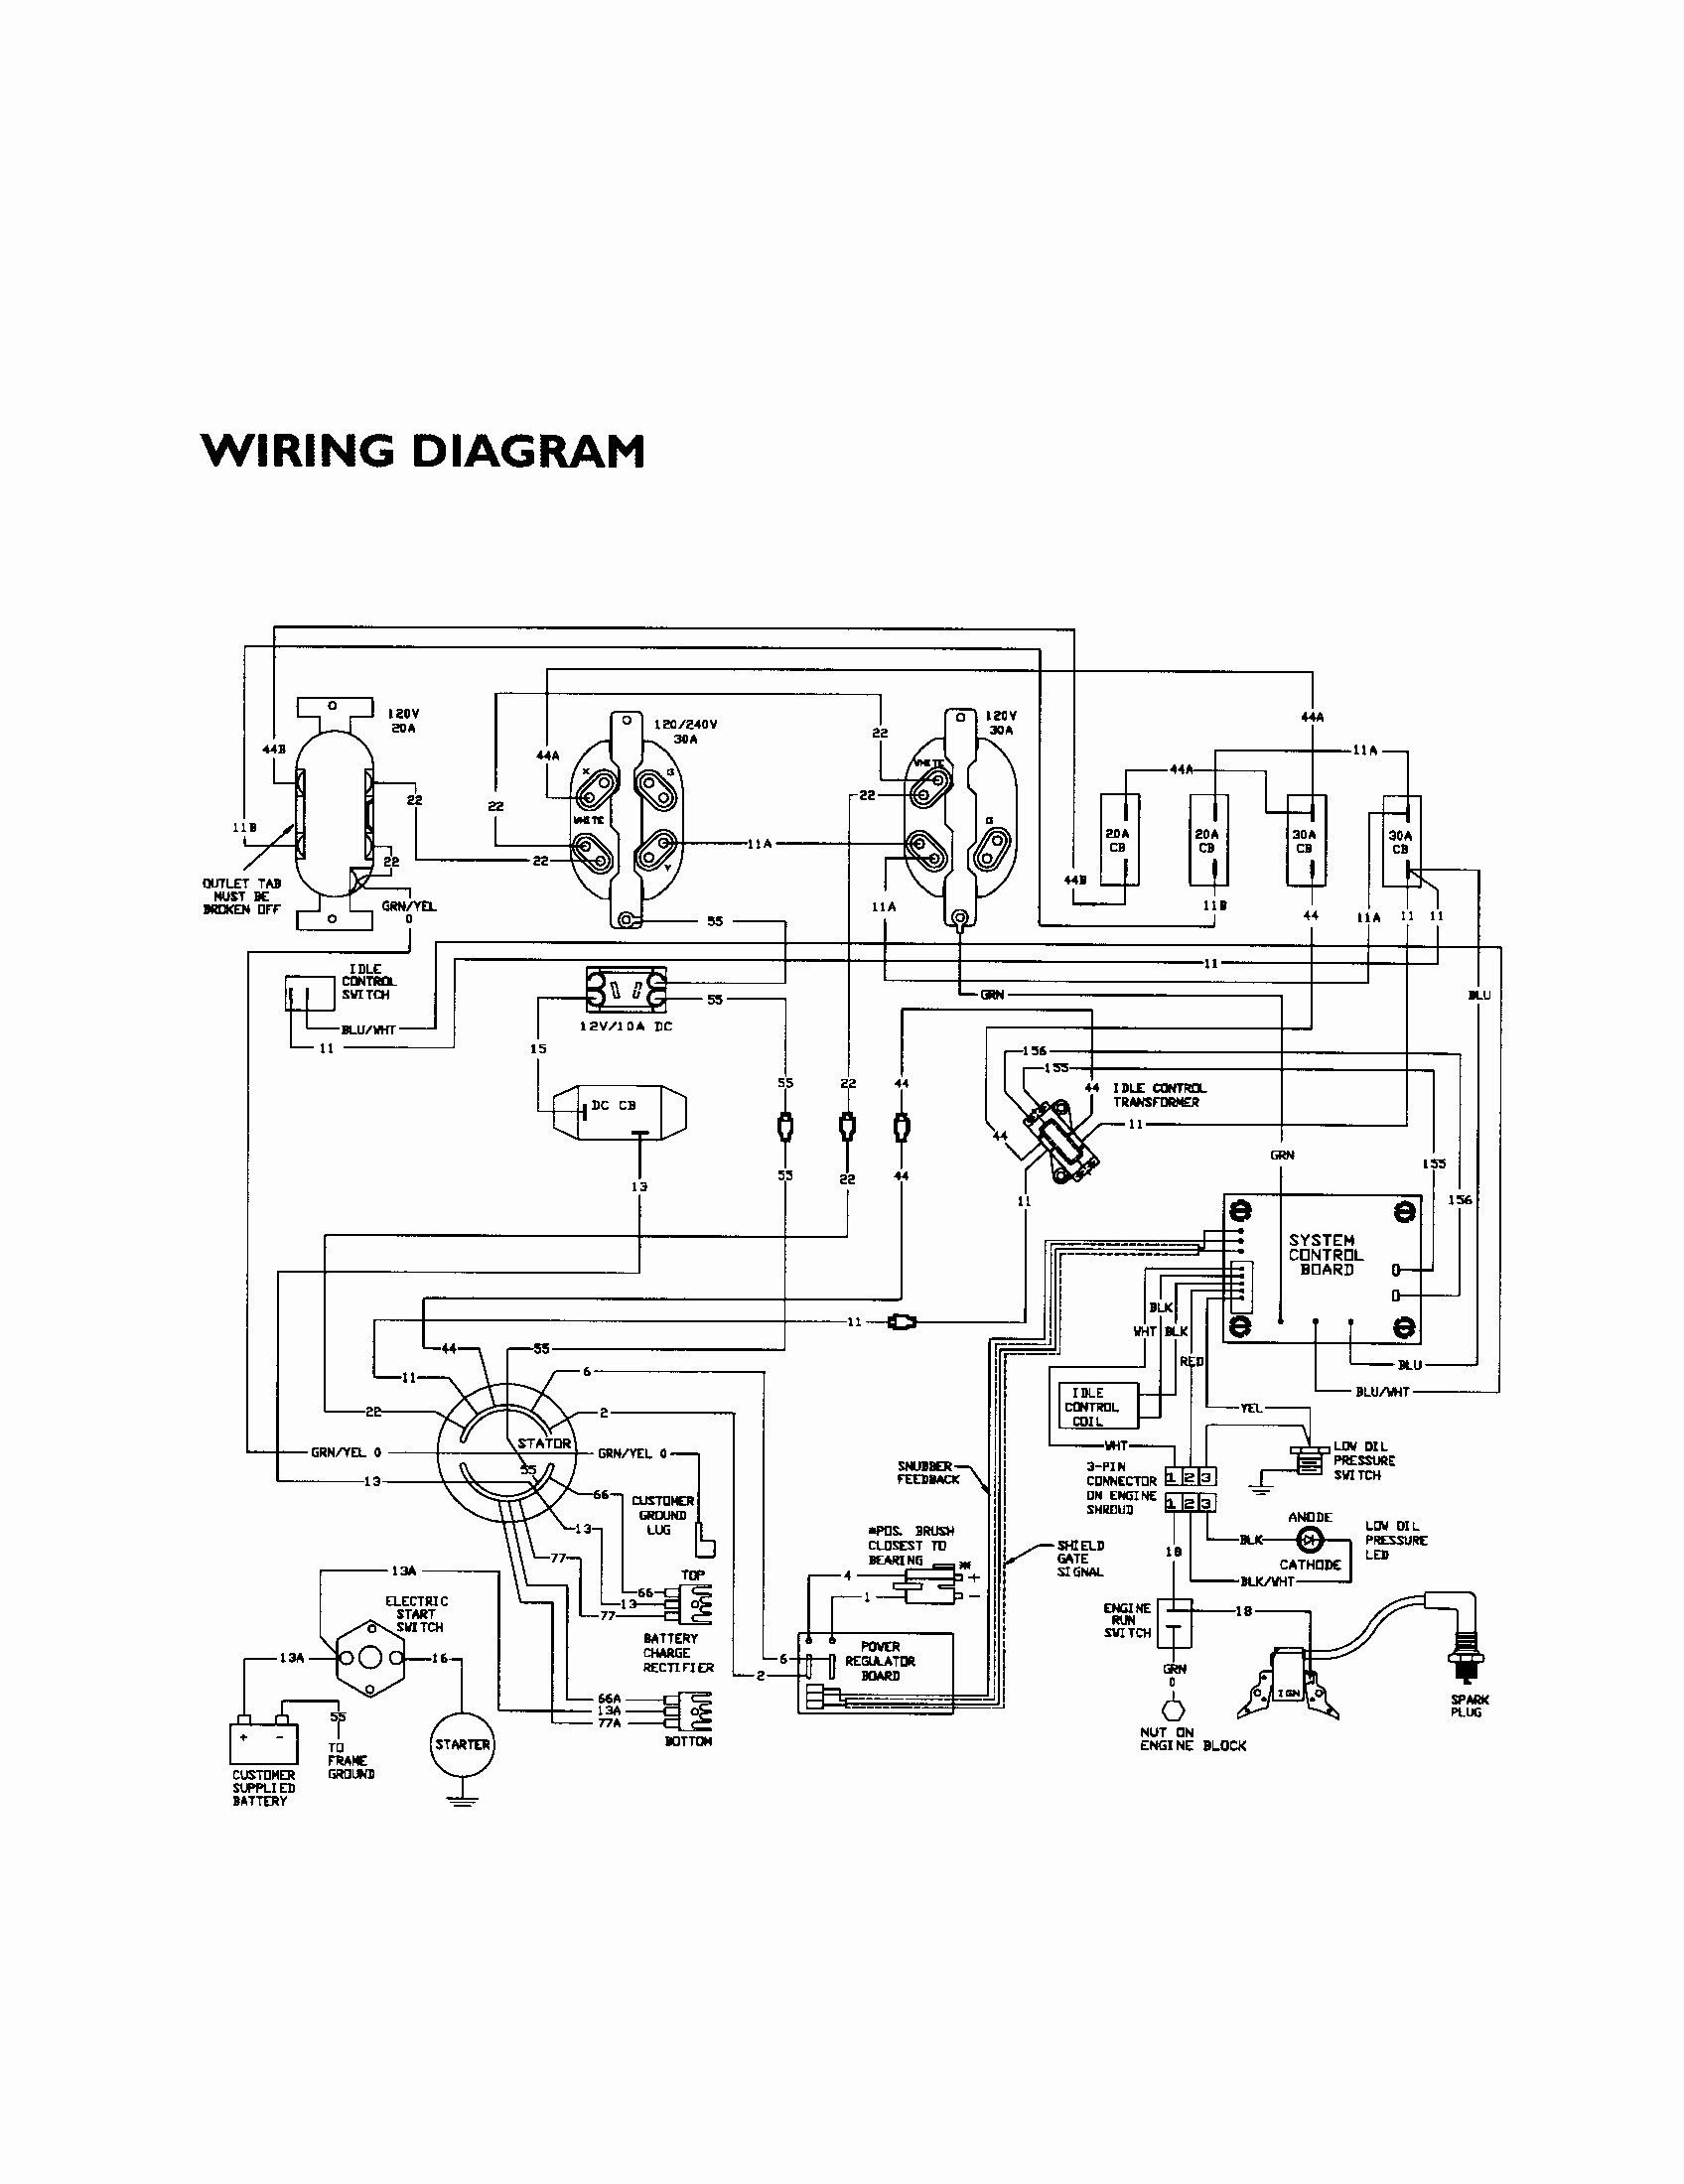 Unique Wiring Diagram Backup Generator #diagram #